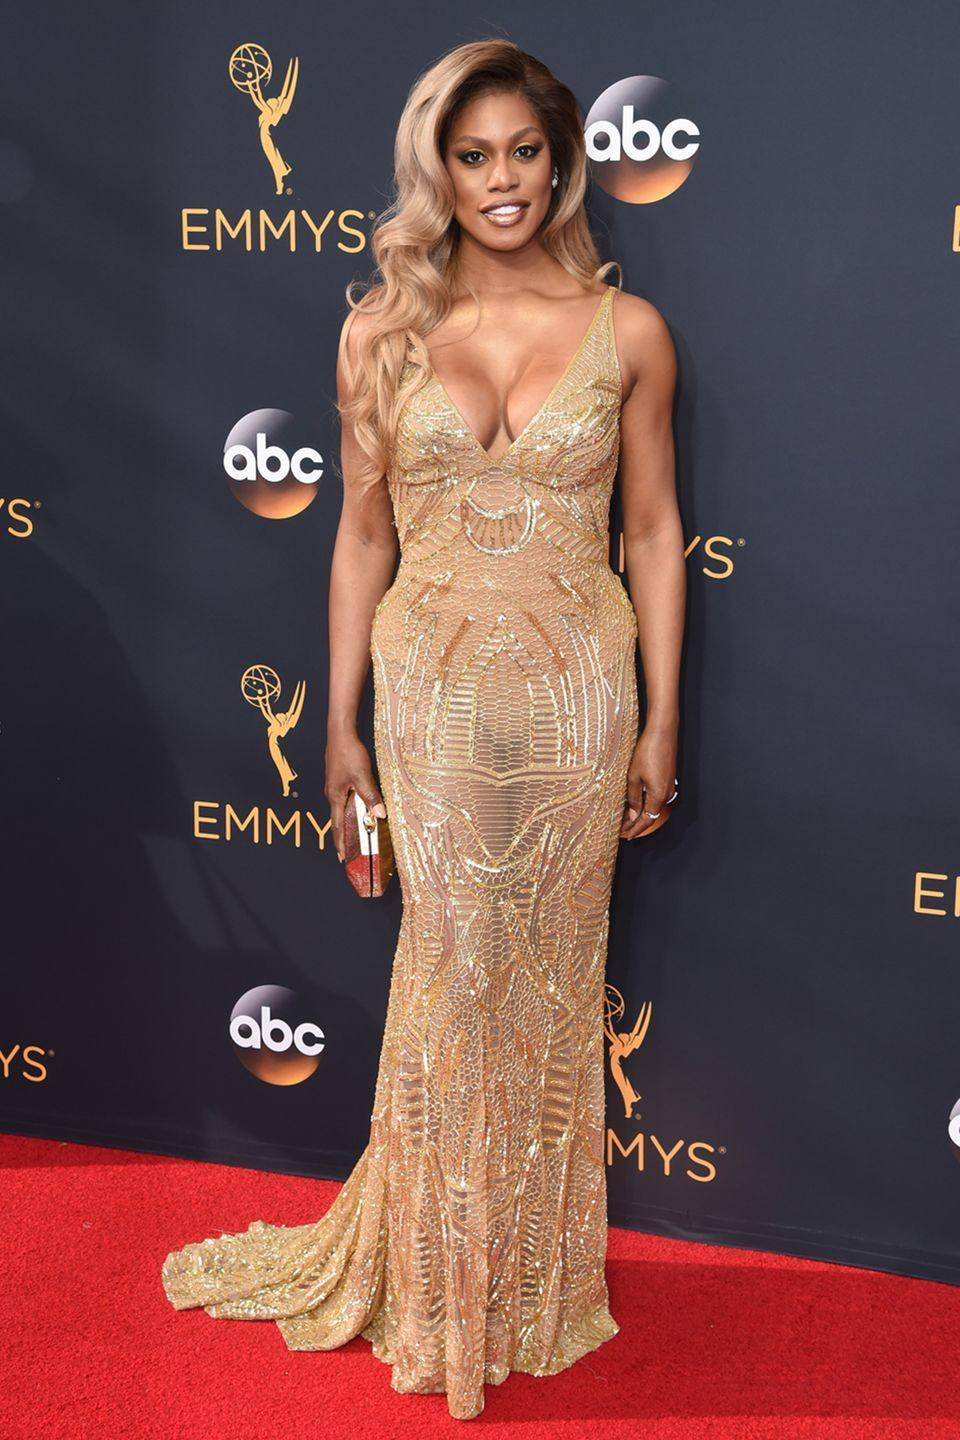 <p>The <em>Orange Is the New Black</em> star brought glitz and glam to the red carpet in sheer Naeem Khan in 2016.</p>